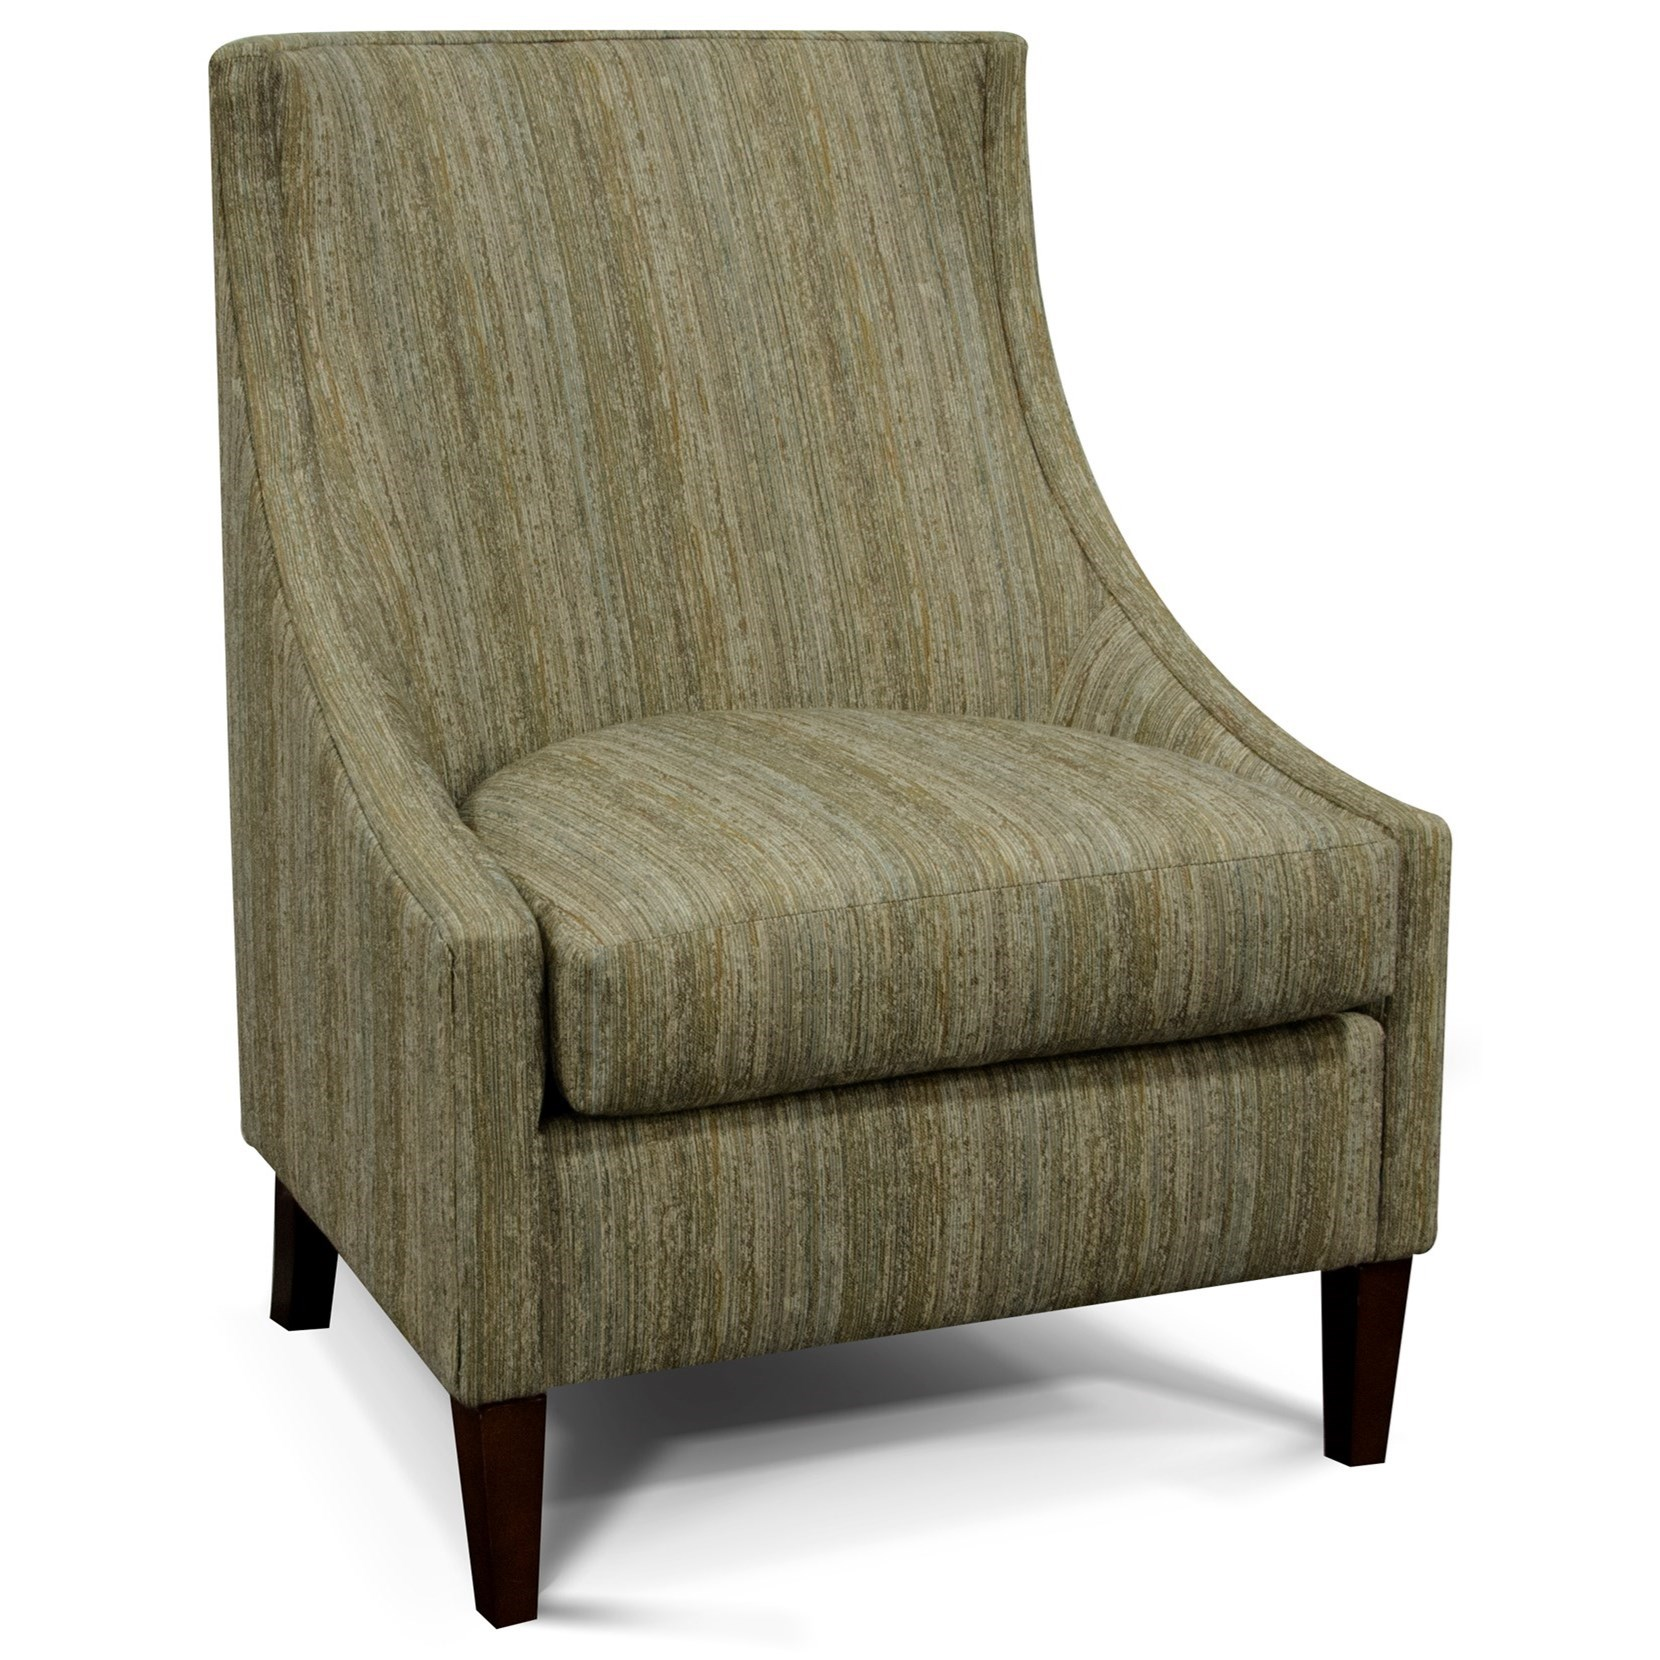 Devin Chair by England at Rooms for Less